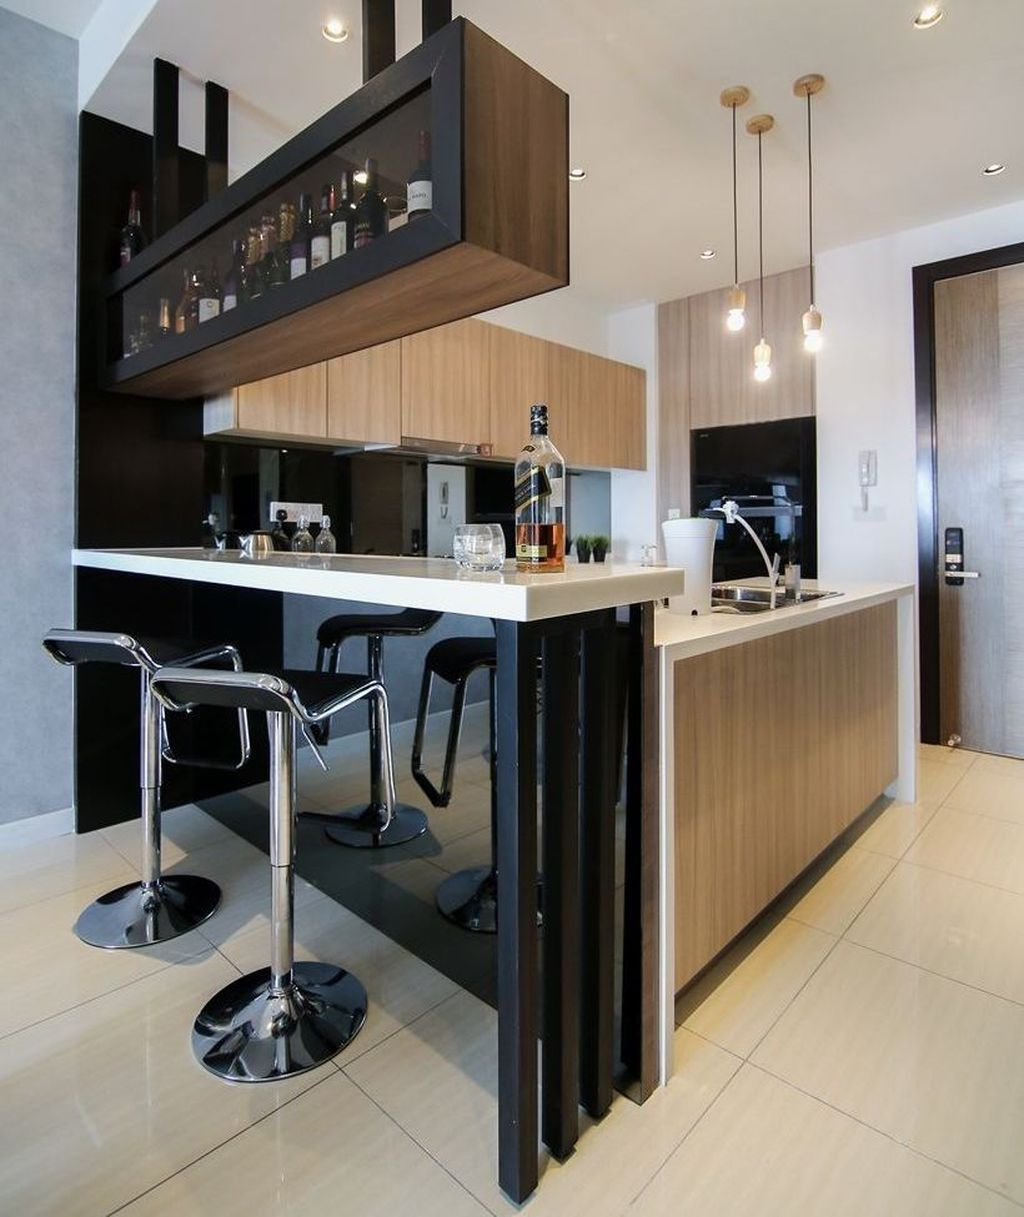 Awesome 48 Lovely Small Kitchen Bar Design Ideas For Apartment Kitchen Bar Design Small Modern Kitchens Modern Kitchen Bar